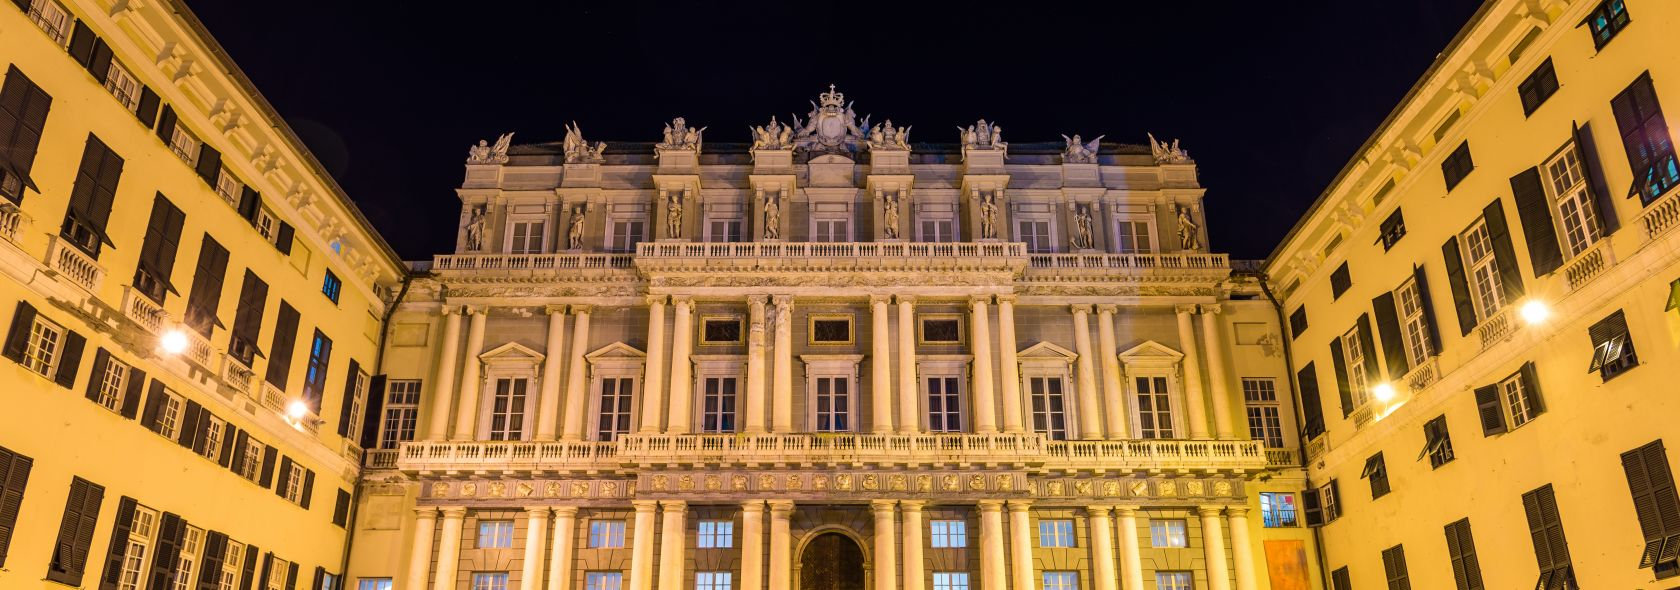 Palazzo Ducale - notturno